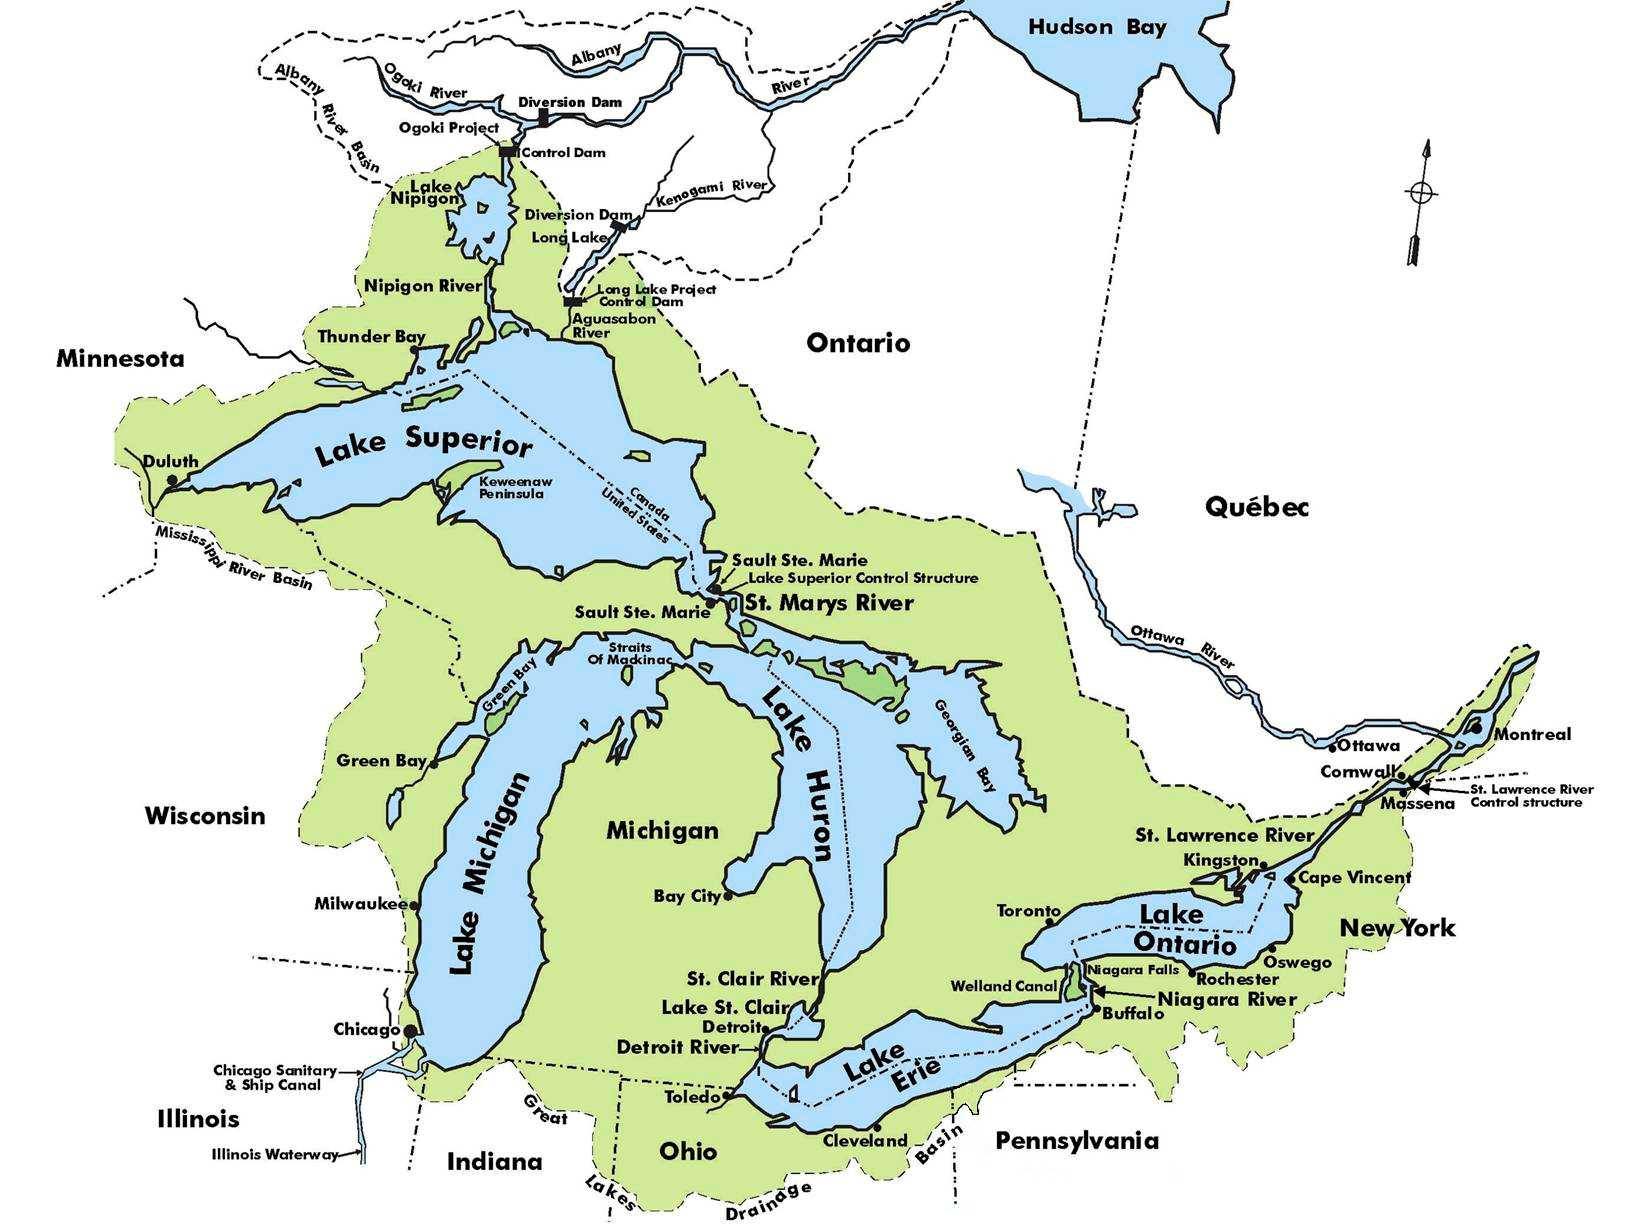 USA Rivers And Lakes Map TEACH Questions Answers Great Lakes Map - Usa map rivers